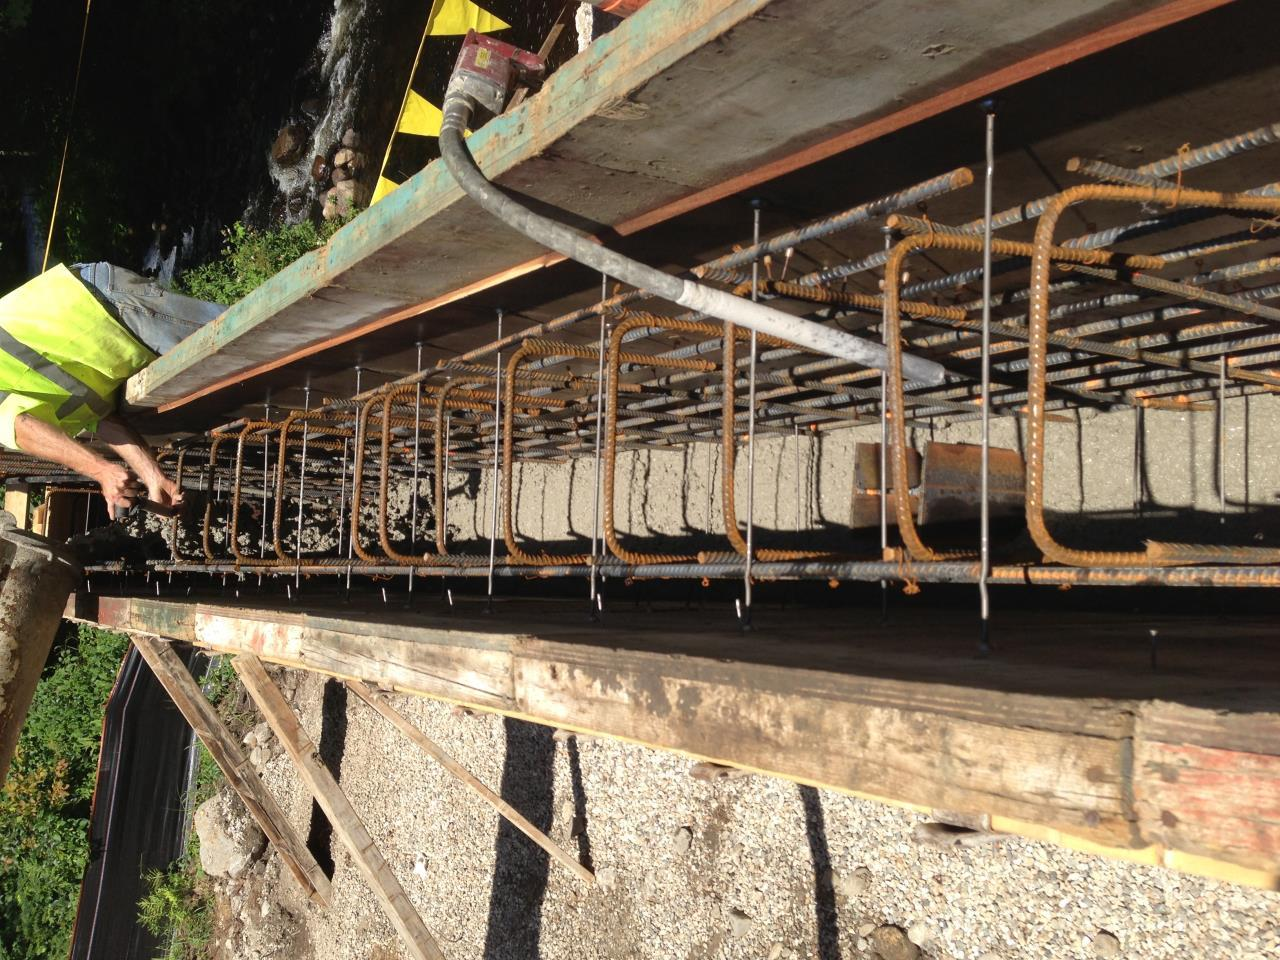 Rebar with concert being poured